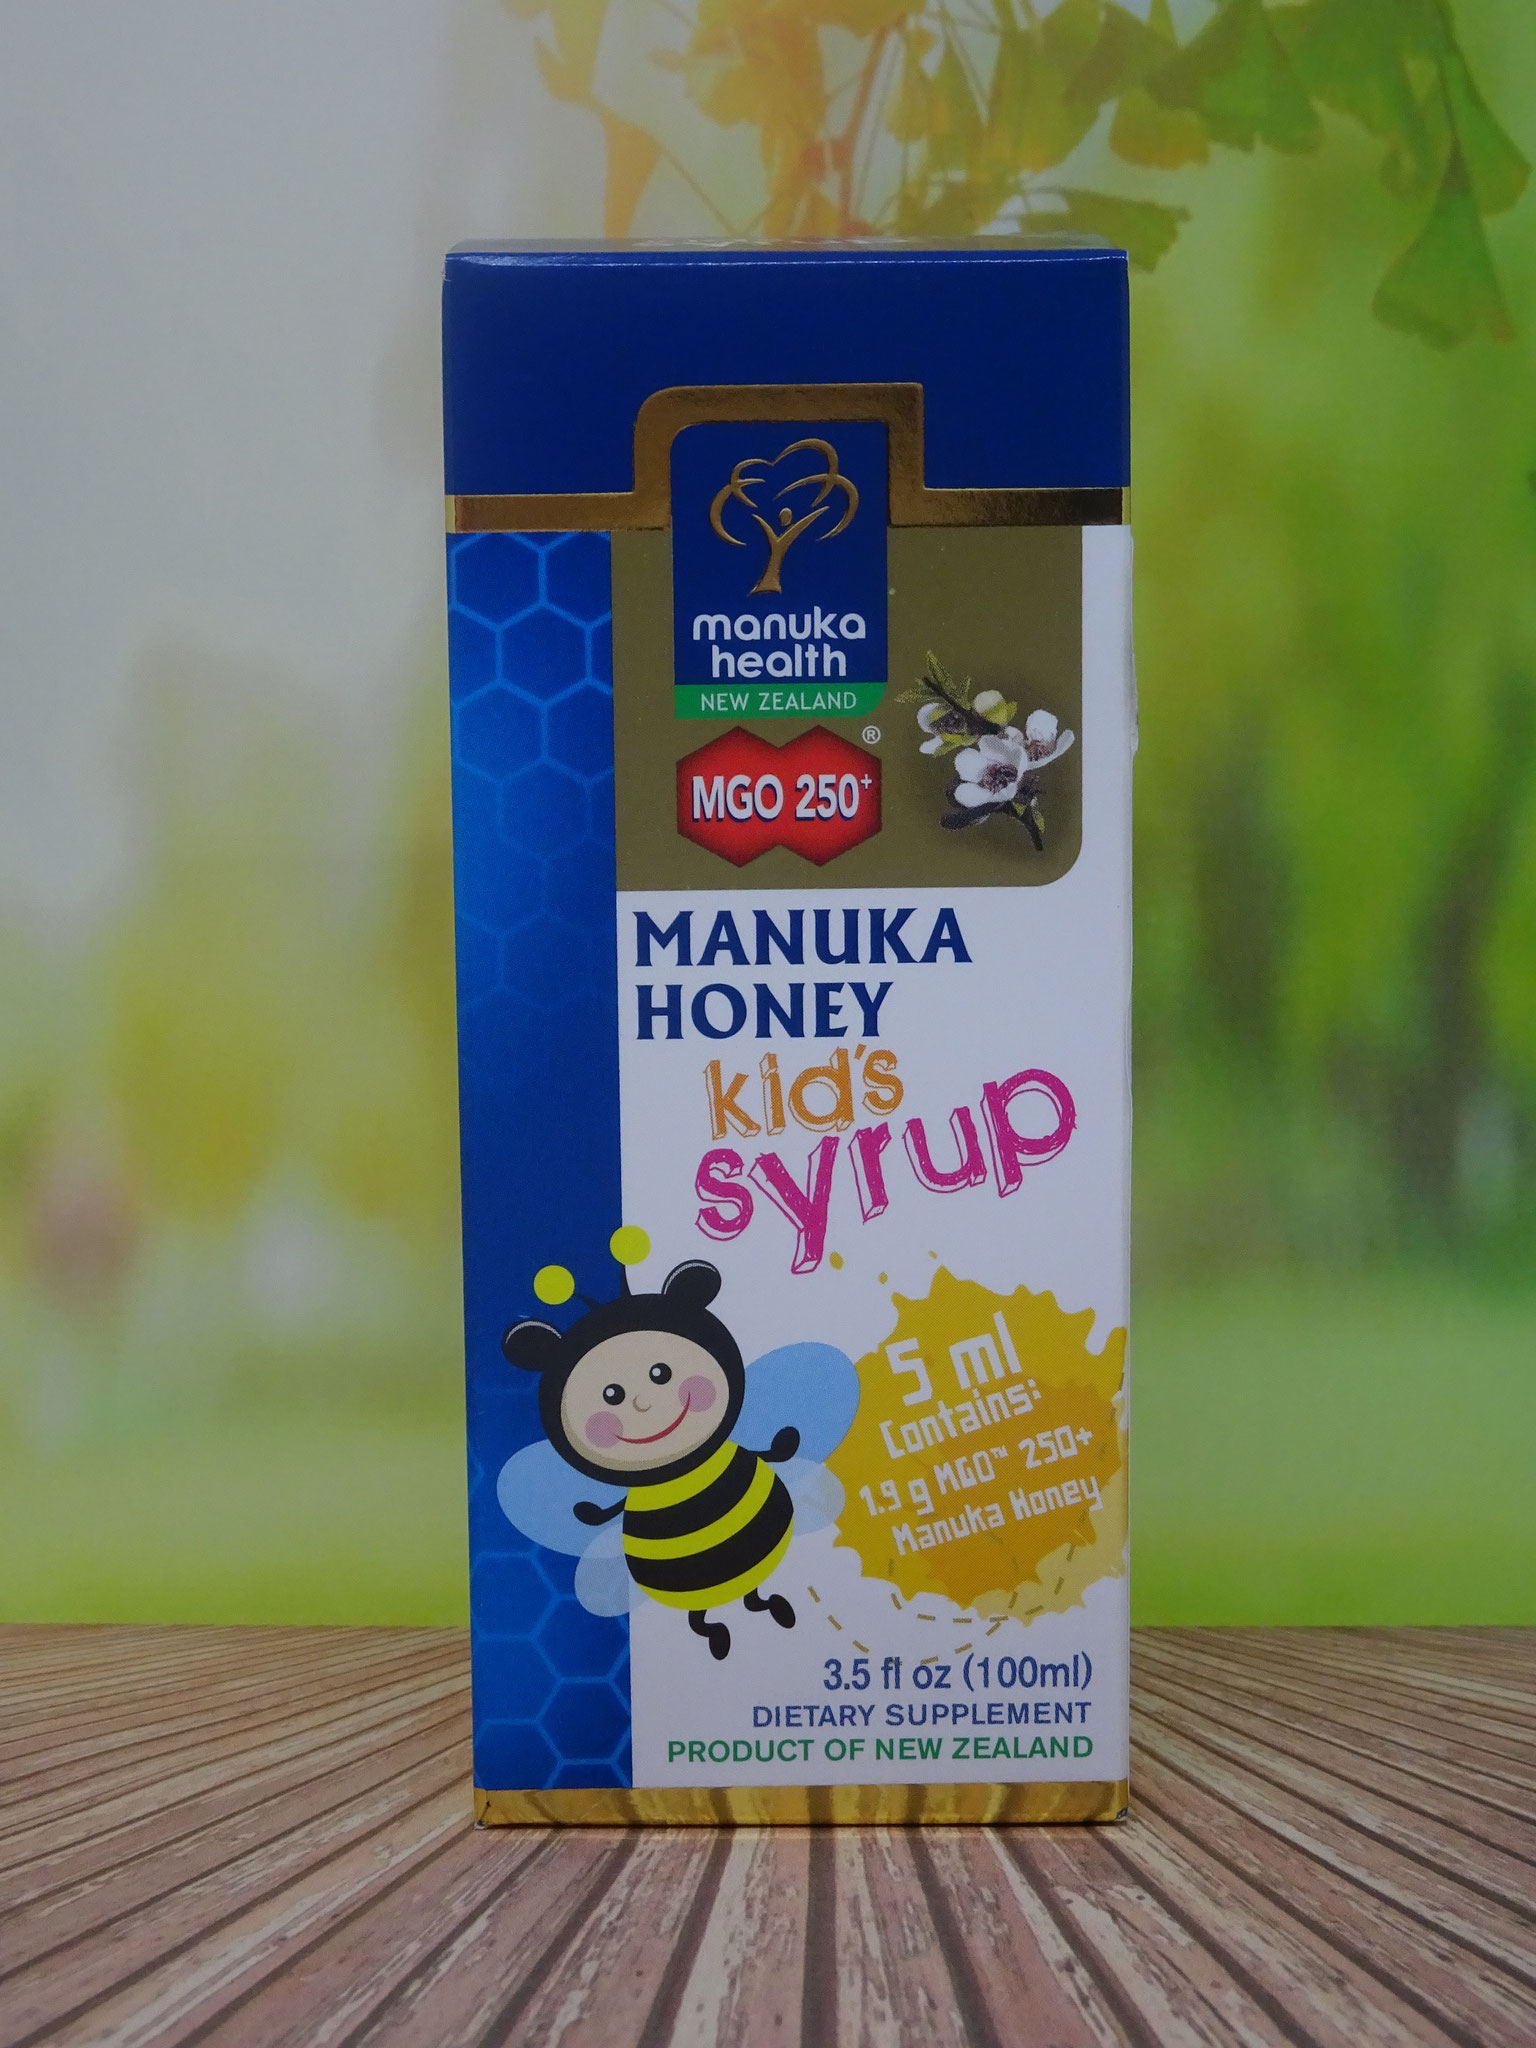 Manuka Honig Sirup Kids Syrup  MGO 250 100 ml (Manuka Health New Zealand)